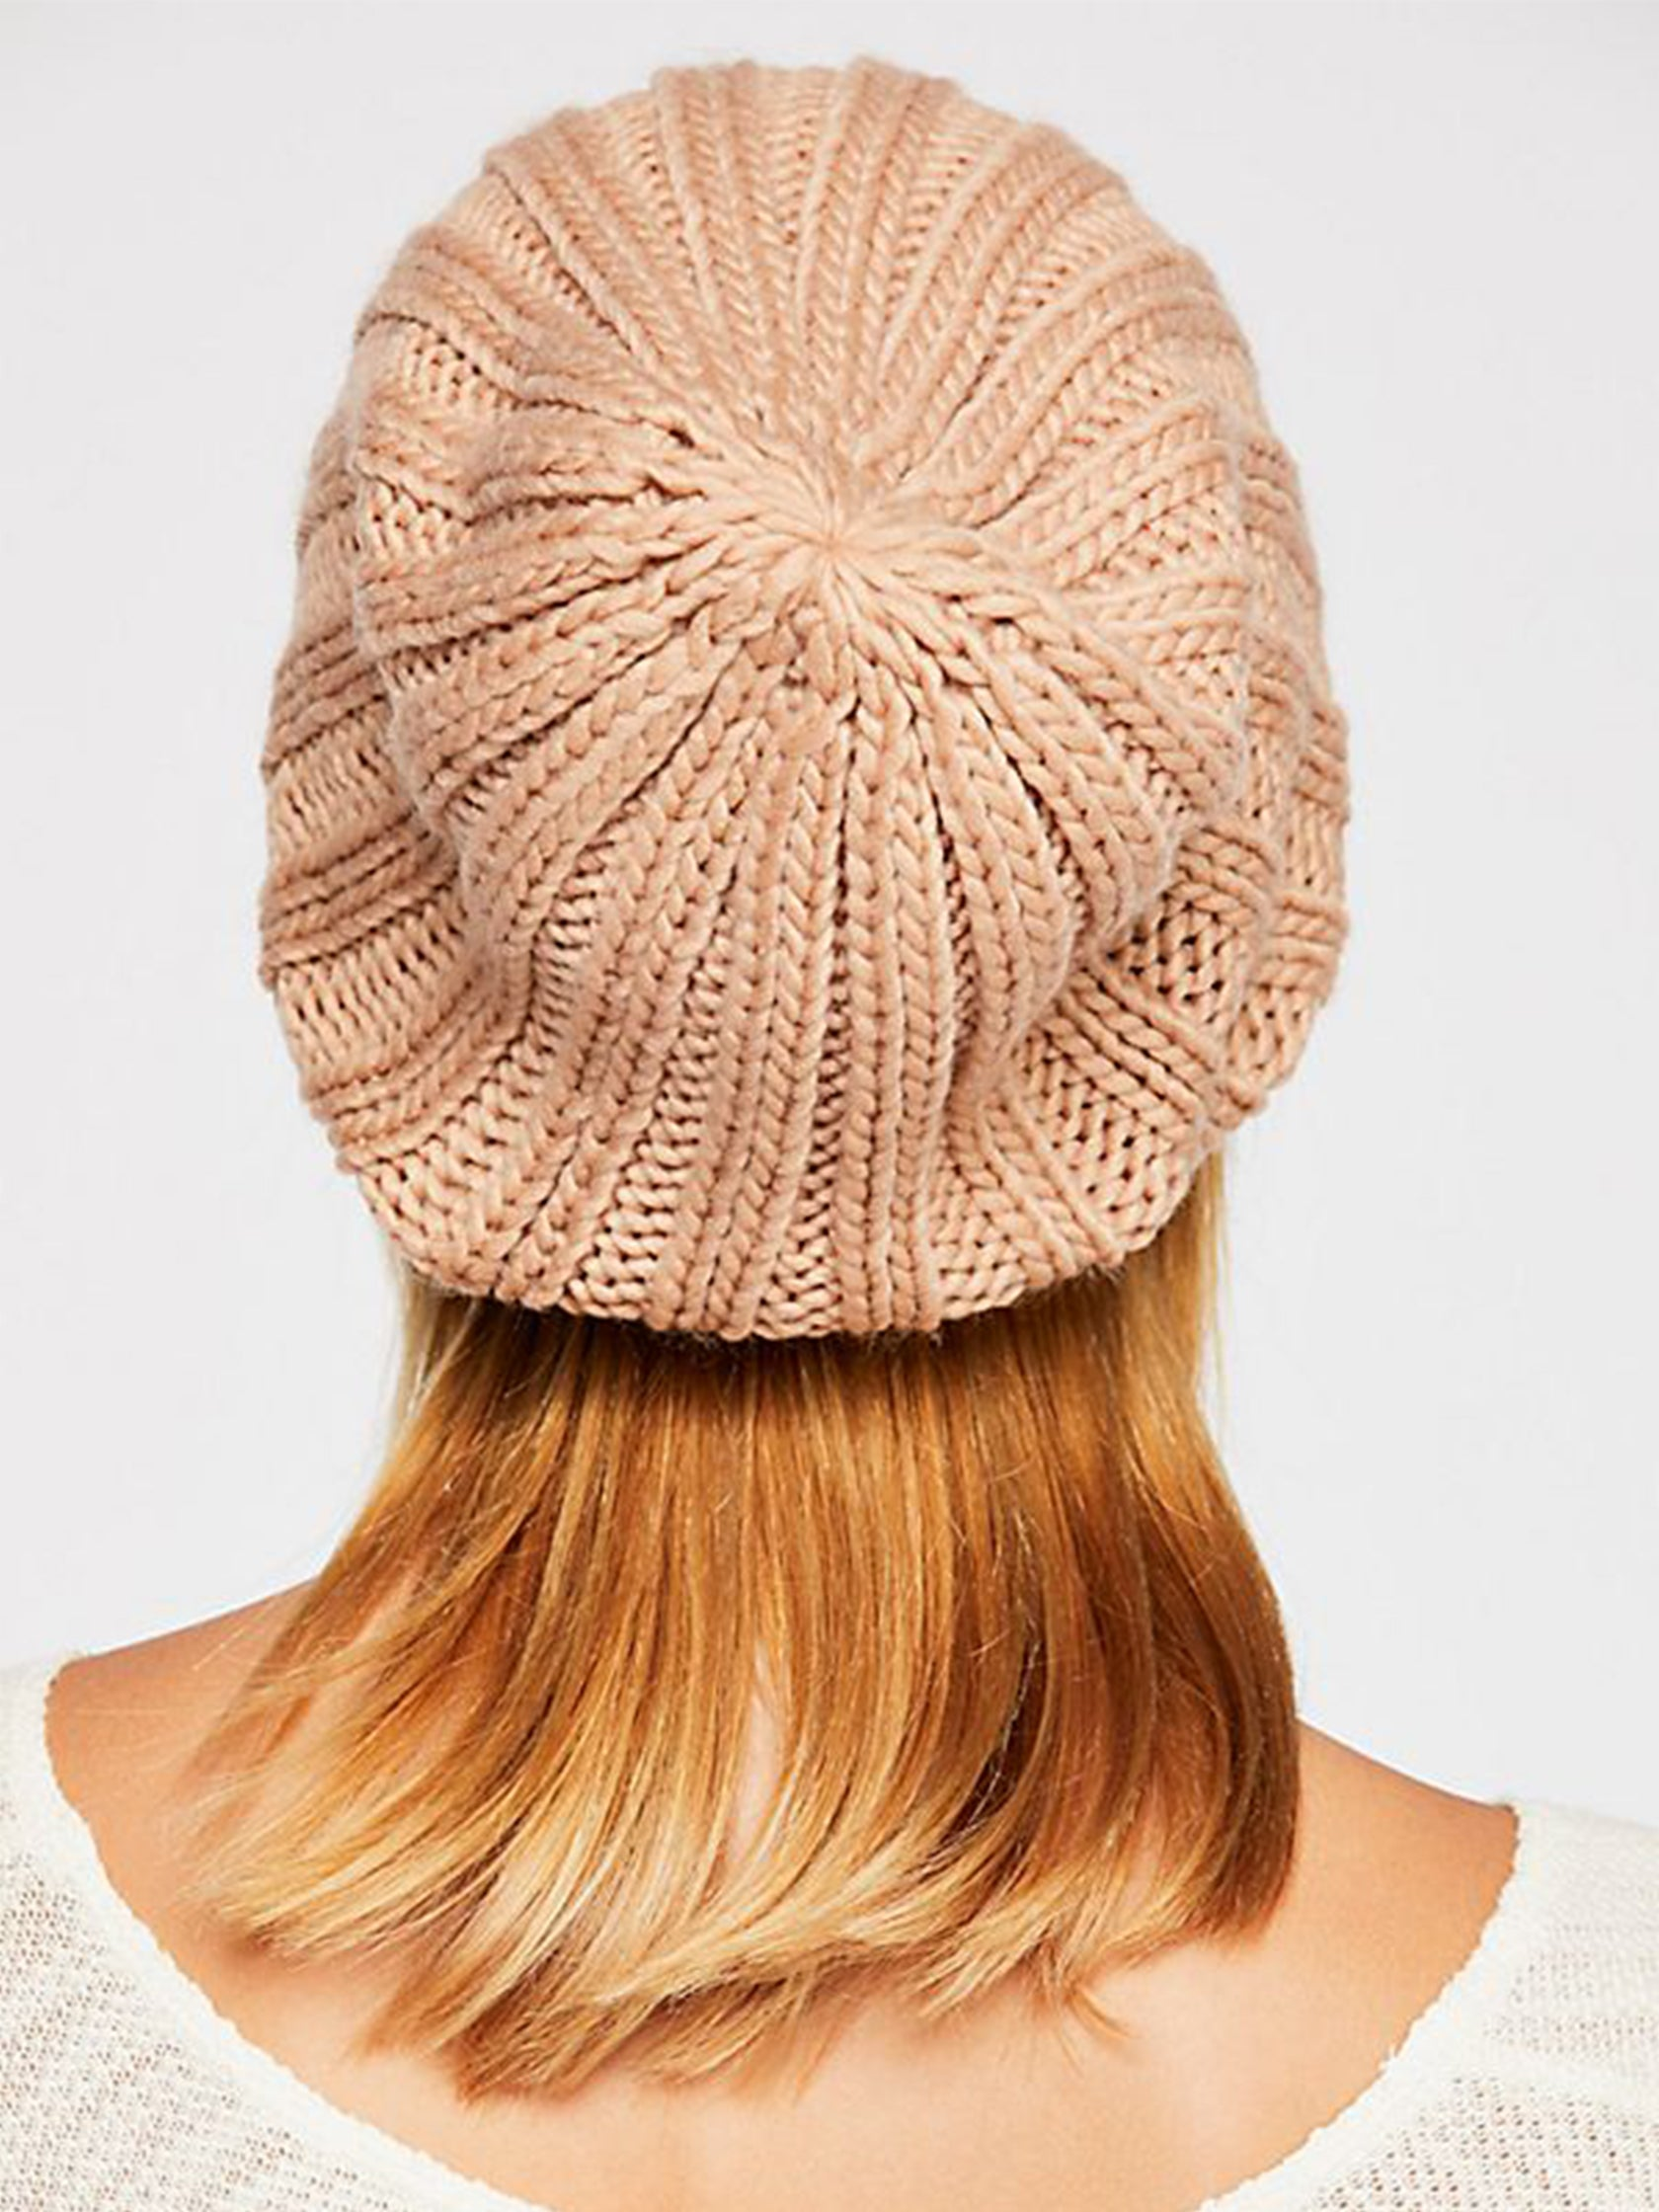 fd45bfe2bca5cf Women wearing a hat rental from Free People called Rory Rib Knit Beanie